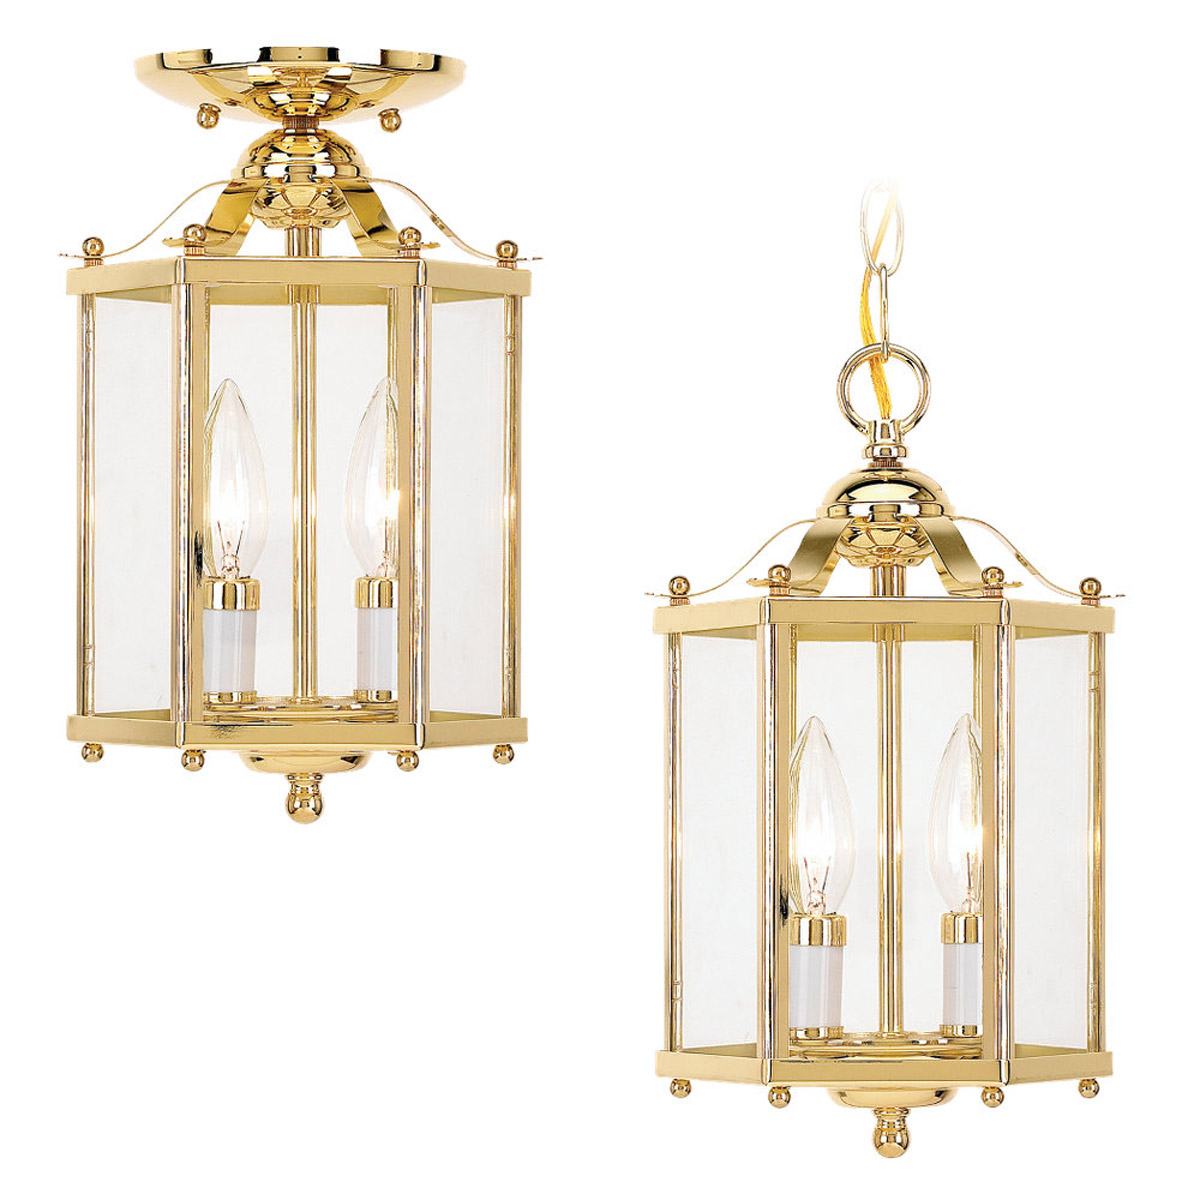 Sea Gull Lighting Bretton 2 Light Pendant Convertible in Polished Brass 5232-02 photo